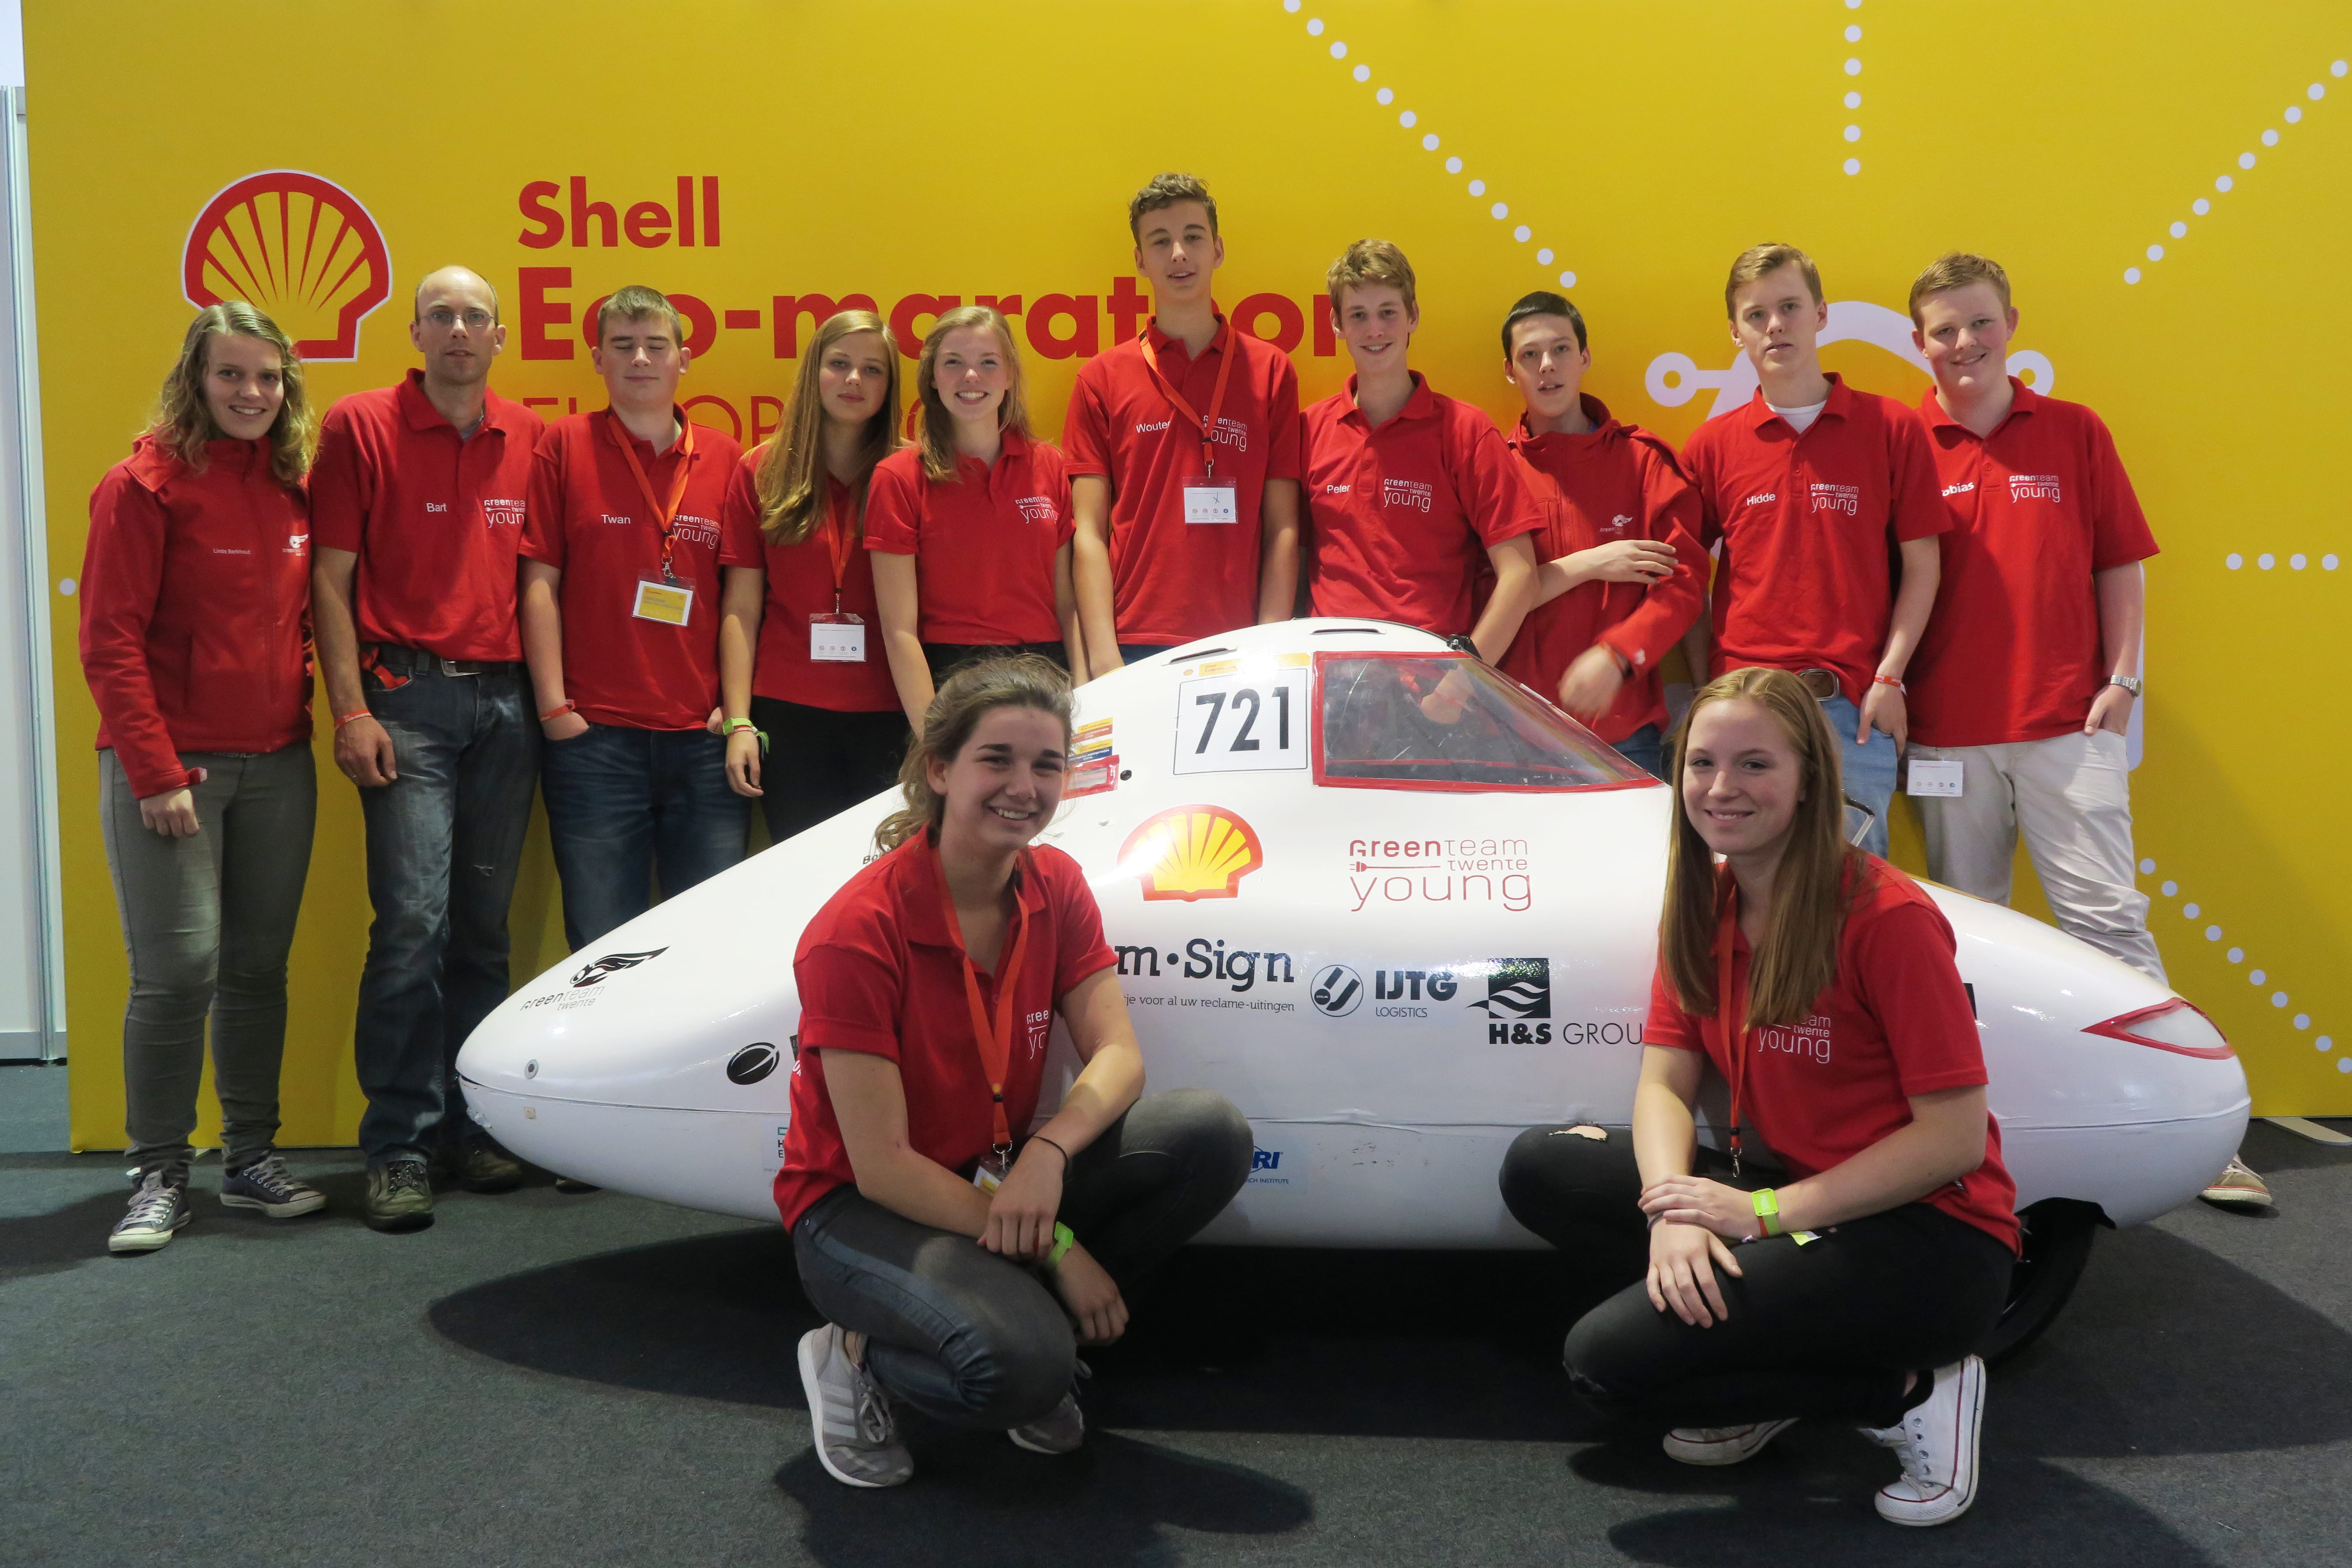 Green Team Twente Young | Shell Eco Marathon groepsfoto #2